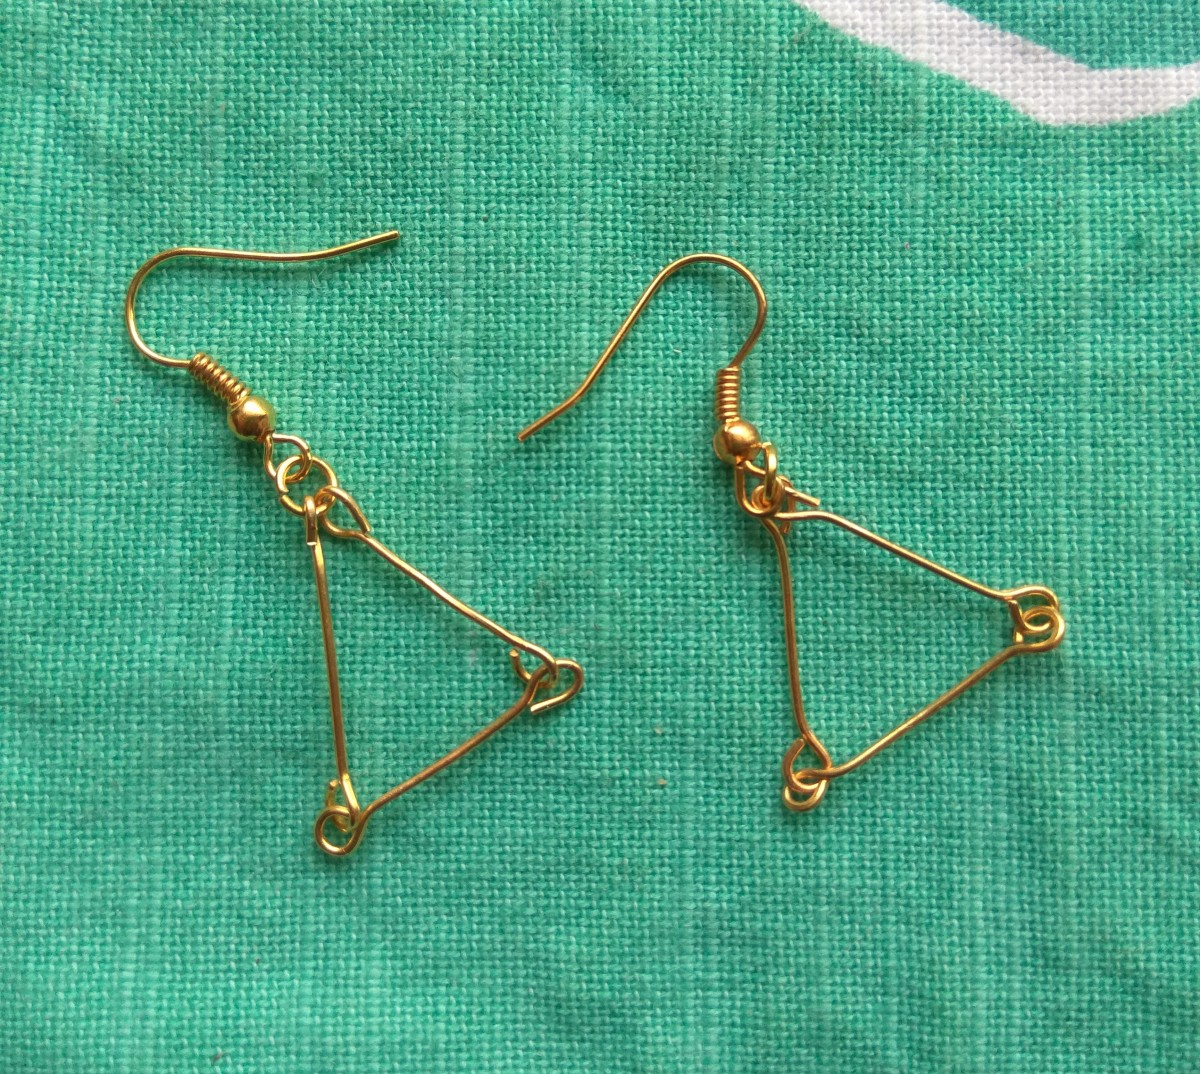 Diy jewelry feltmagnet diy project how to make triangle earrings with just jewelry findings solutioingenieria Image collections